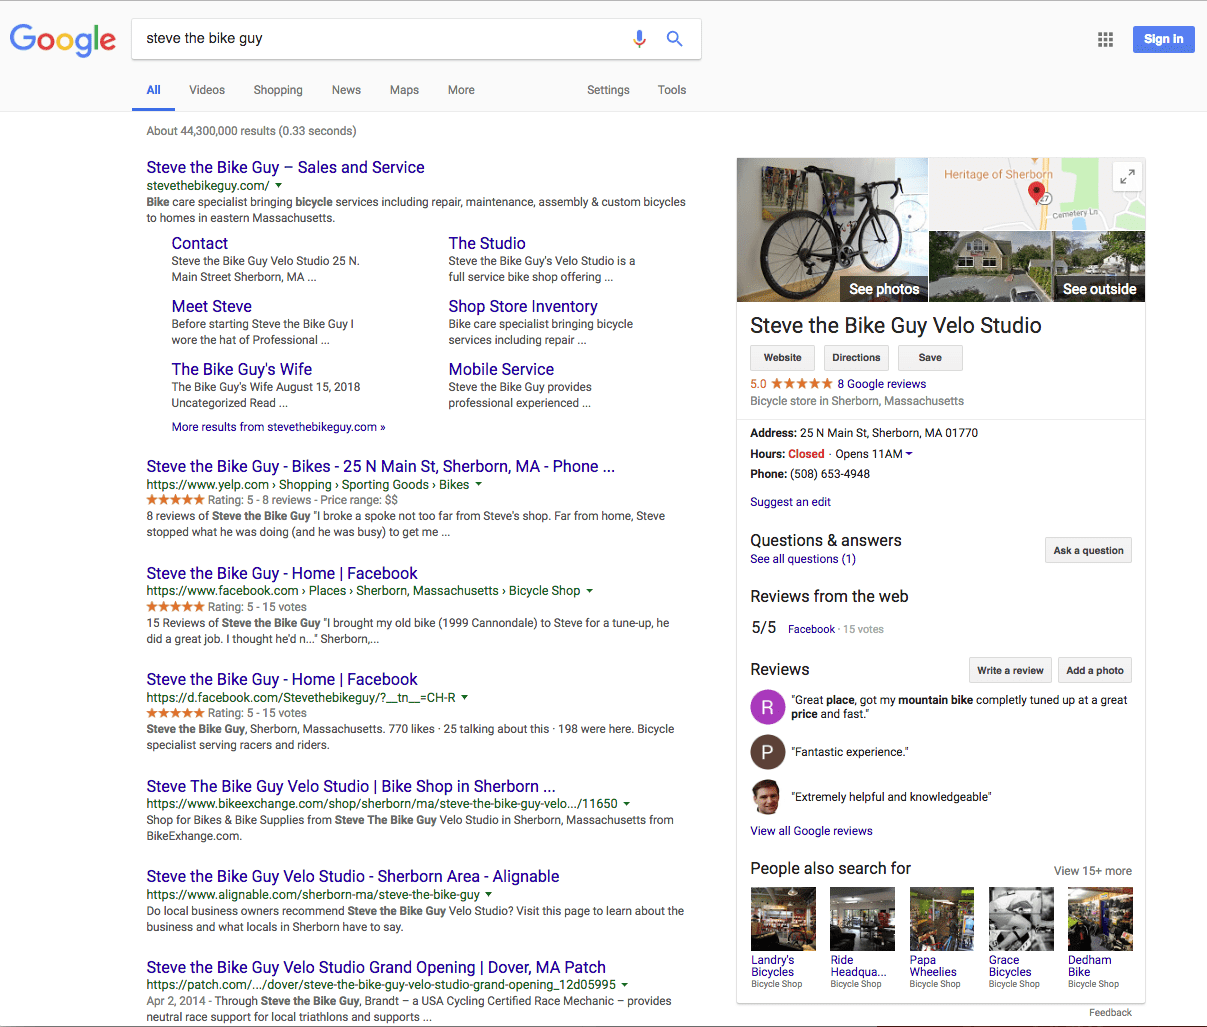 Steve the Bike Guy listing with Google Business showing on right.